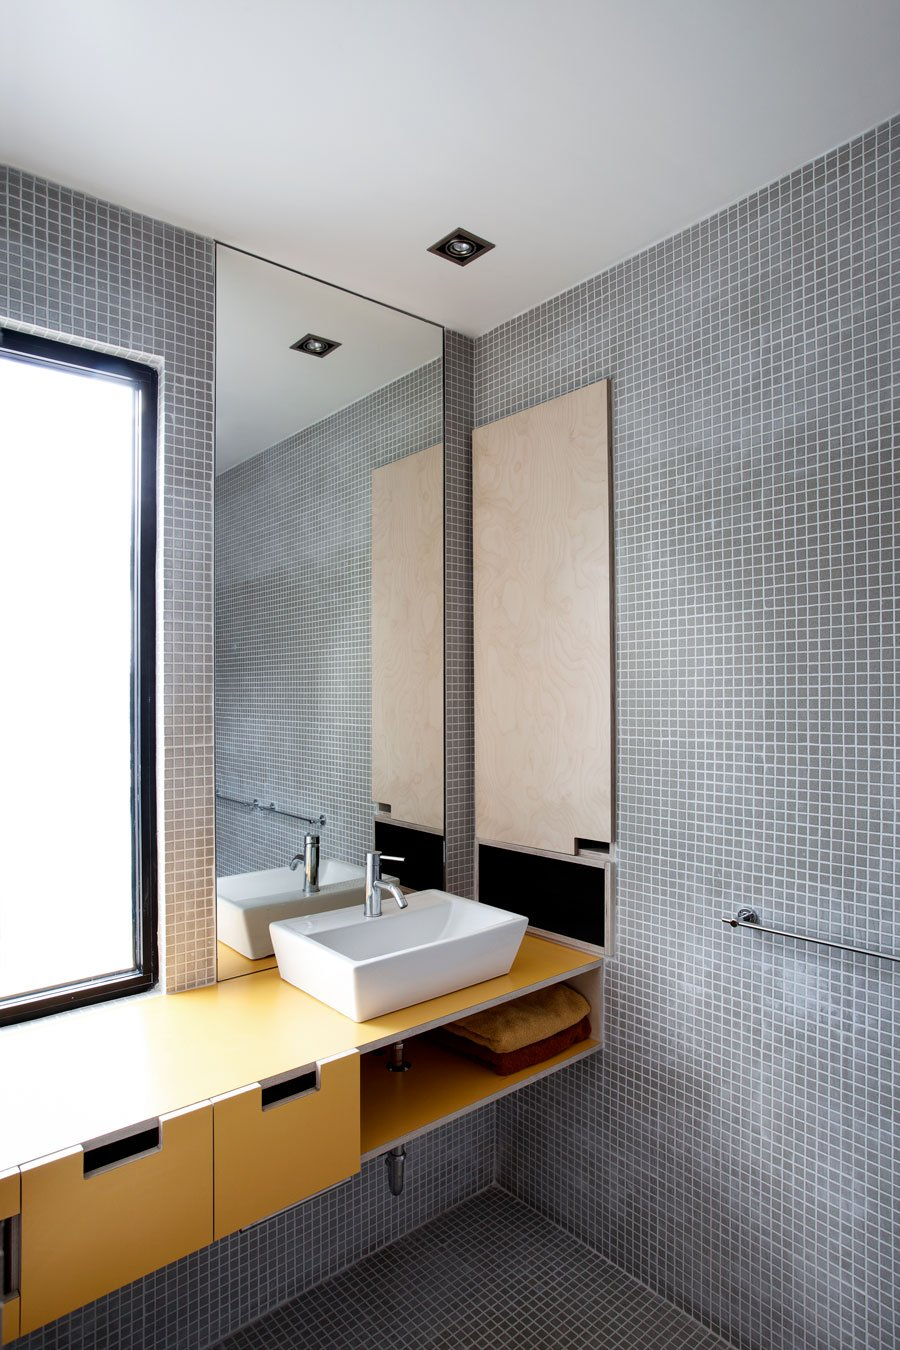 Wonderful Contemporary Home Idea with Amazing Color Choice: Unique Bathroom Design Interior With Mosaic Grey Wall And Floor Design Decorated With Yellow Bathroom Vanity Furniture For Inspiration